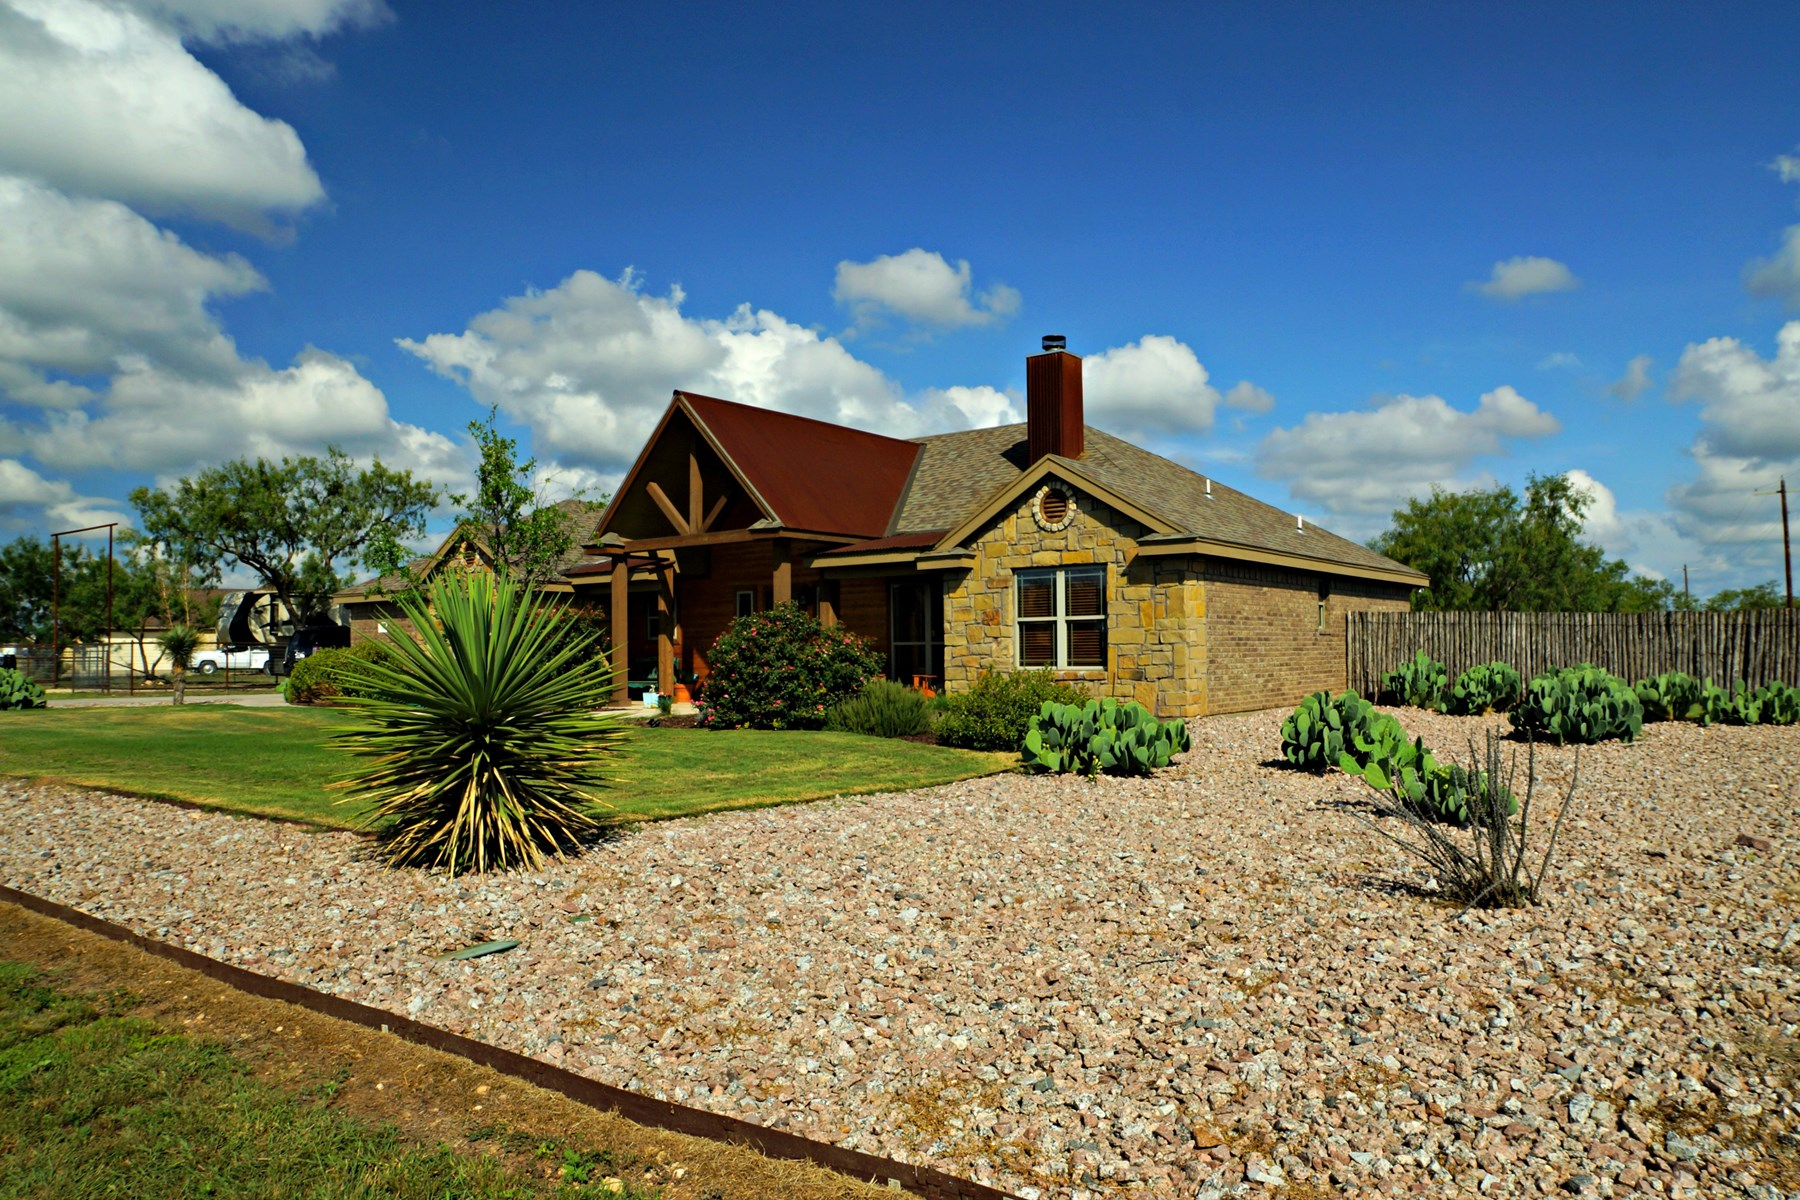 BUFFALO HEIGHTS RANCH HOME WITH ACREAGE NEAR SAN ANGELO, TX